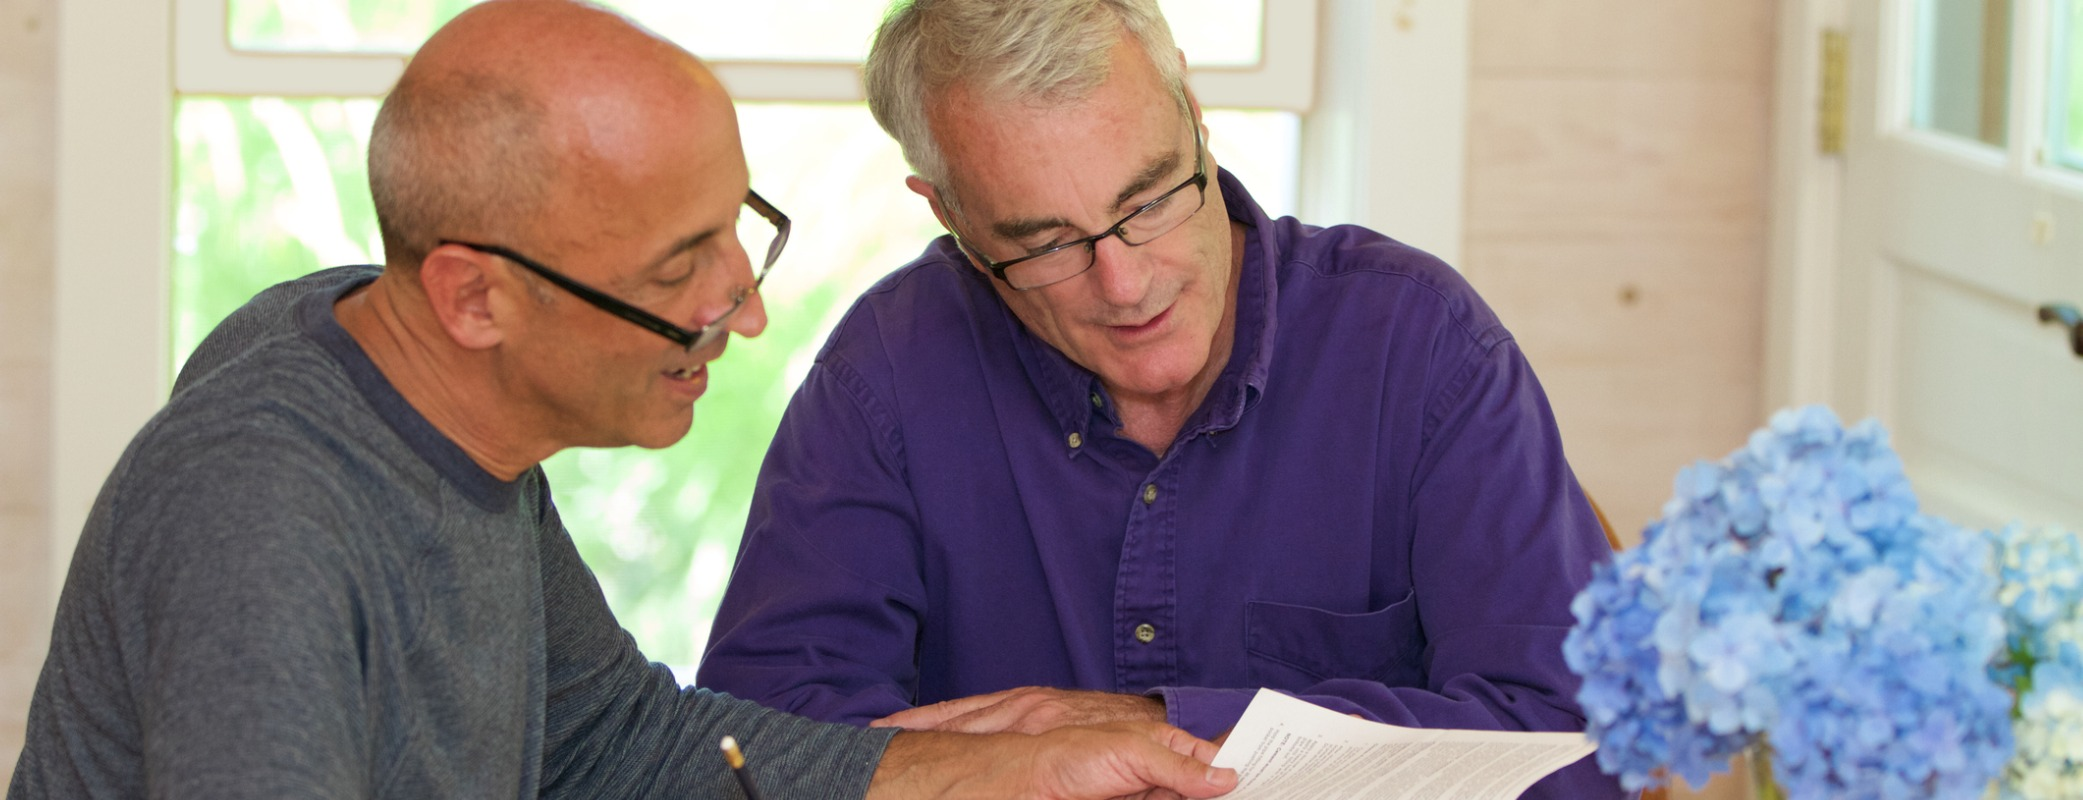 senior-gay-male-couple-working-together-on-financial-documents-picture-id486474484.jpg